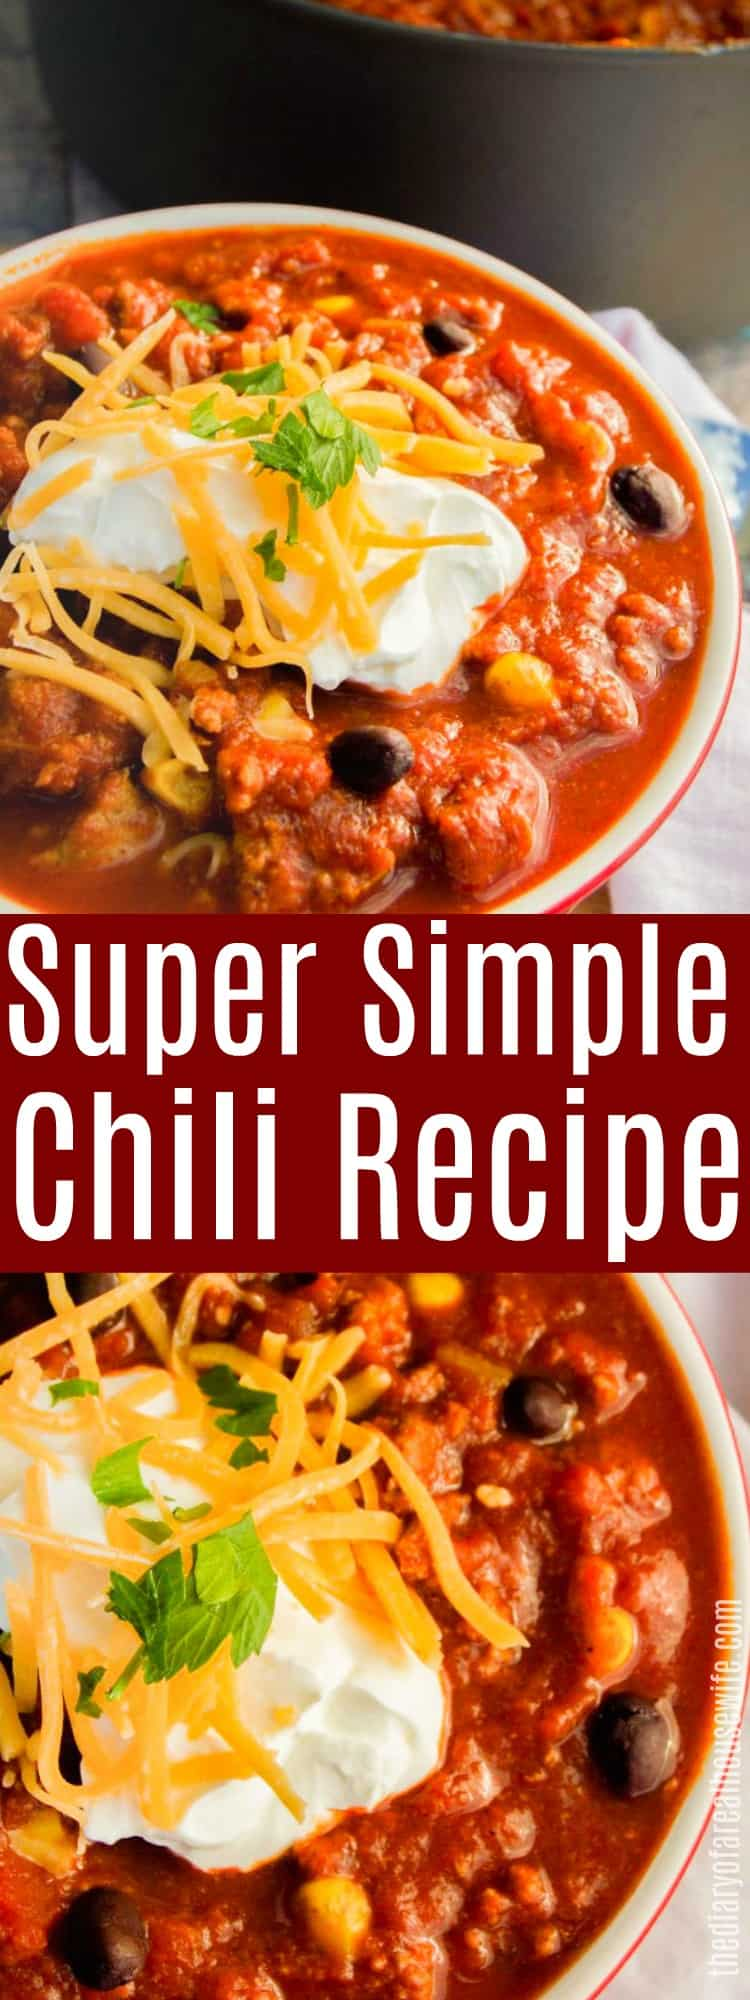 Super Simple Chili